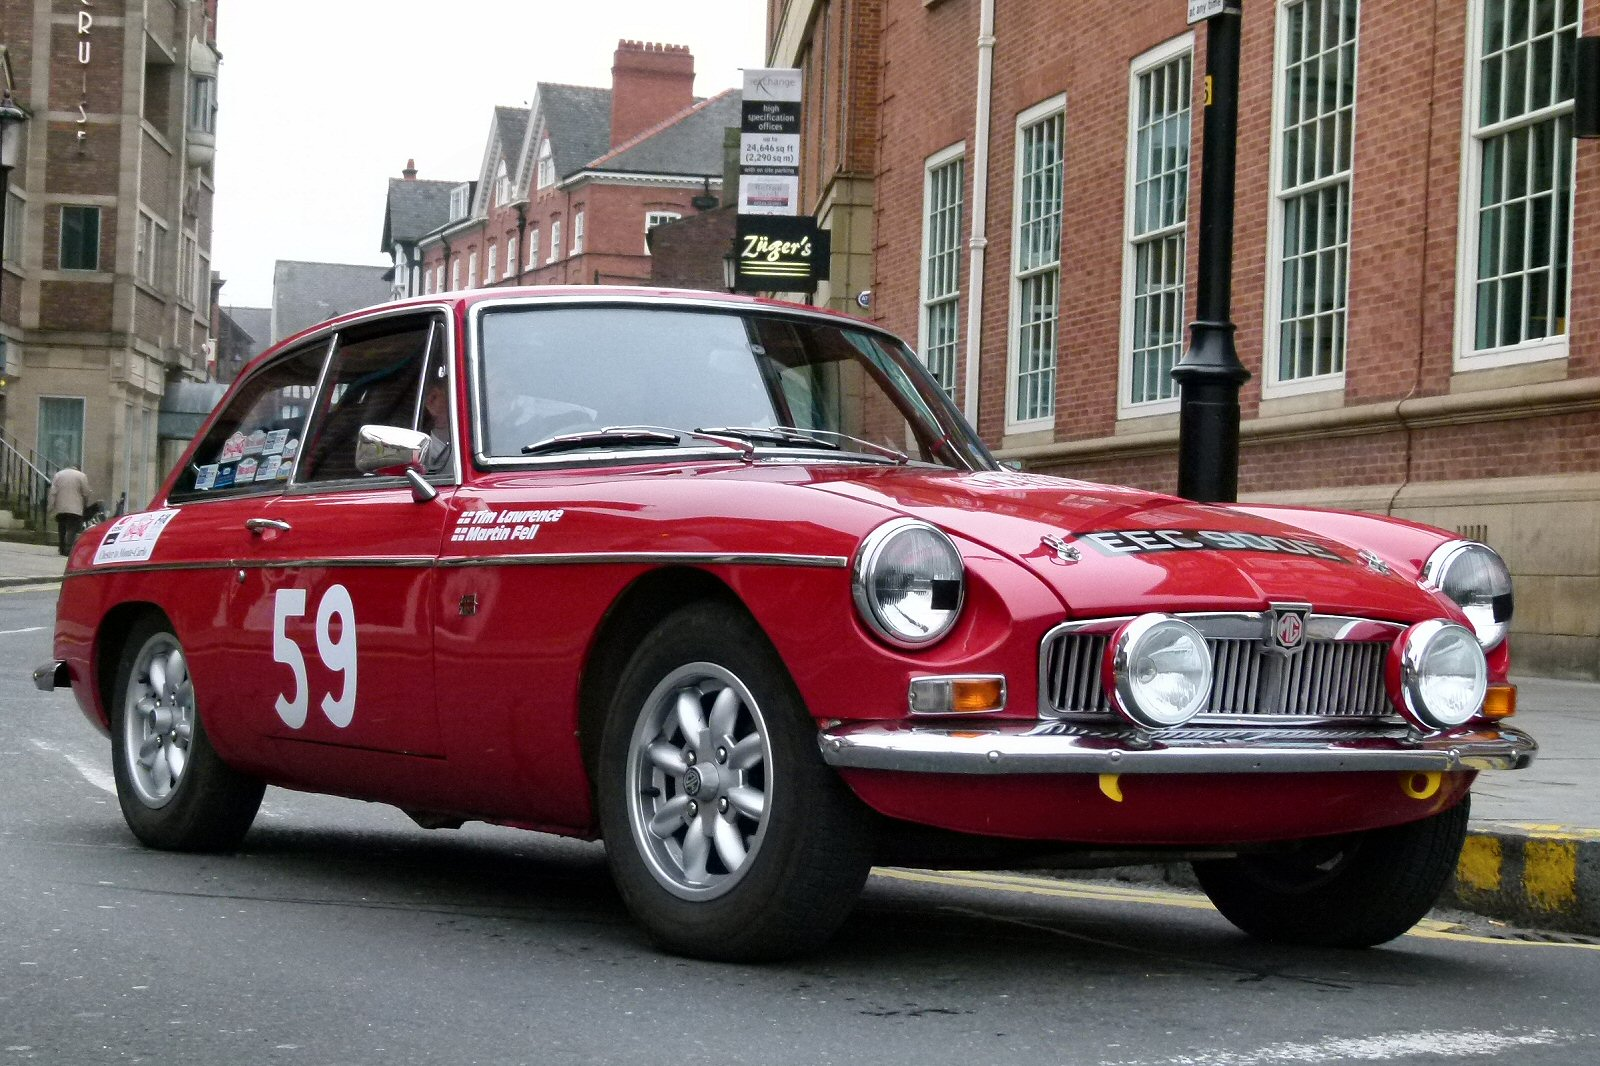 Lovely Mgb Gt Rally Car Images - Classic Cars Ideas - boiq.info